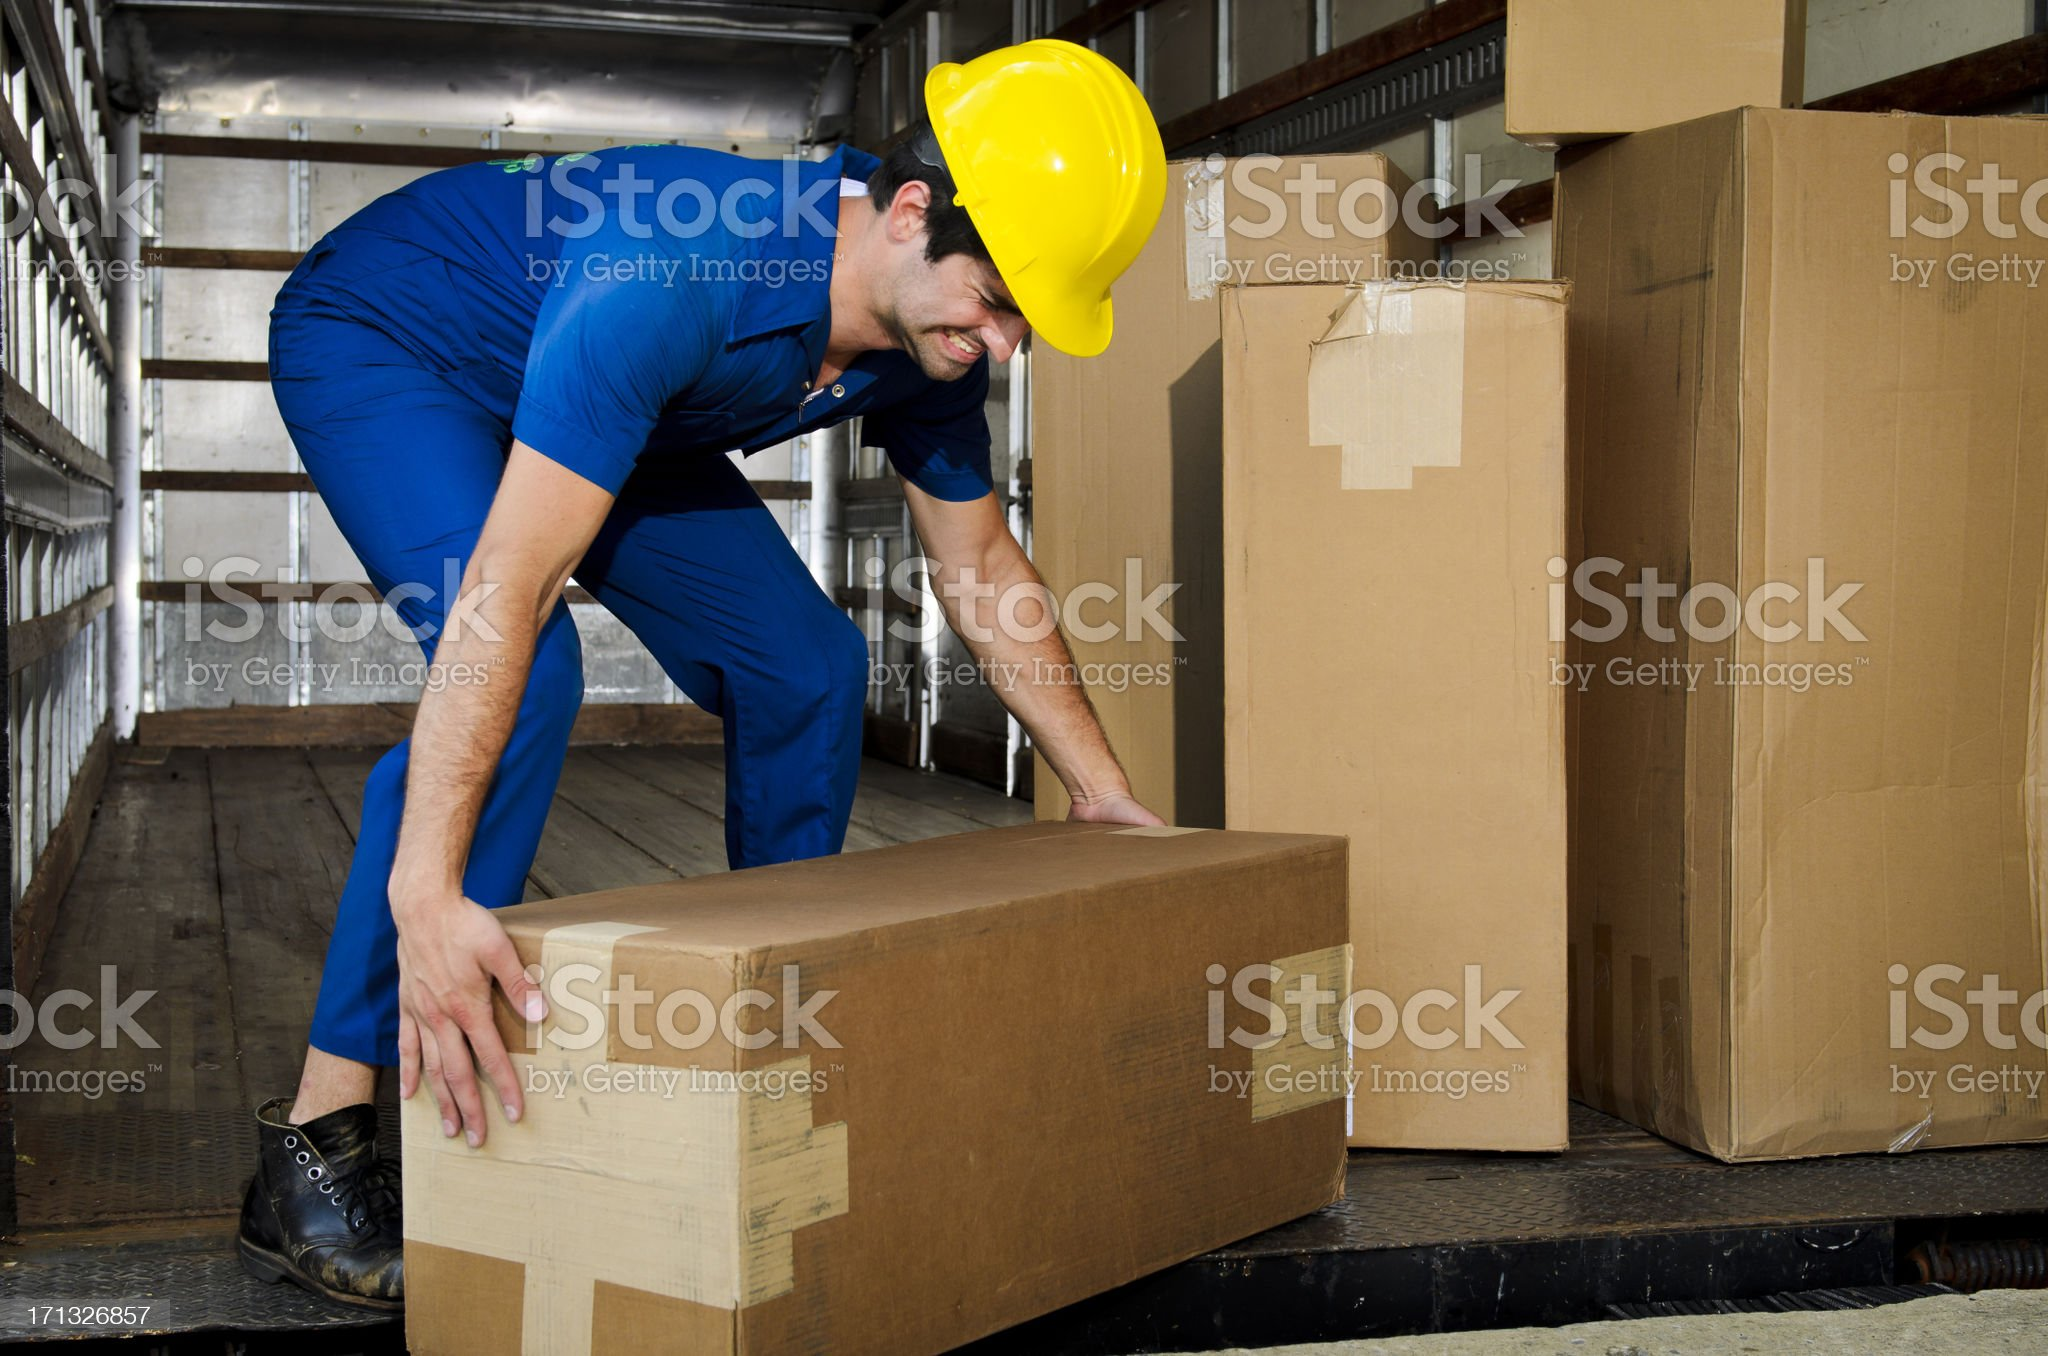 Mover Lifting a Box Incorrectly royalty-free stock photo